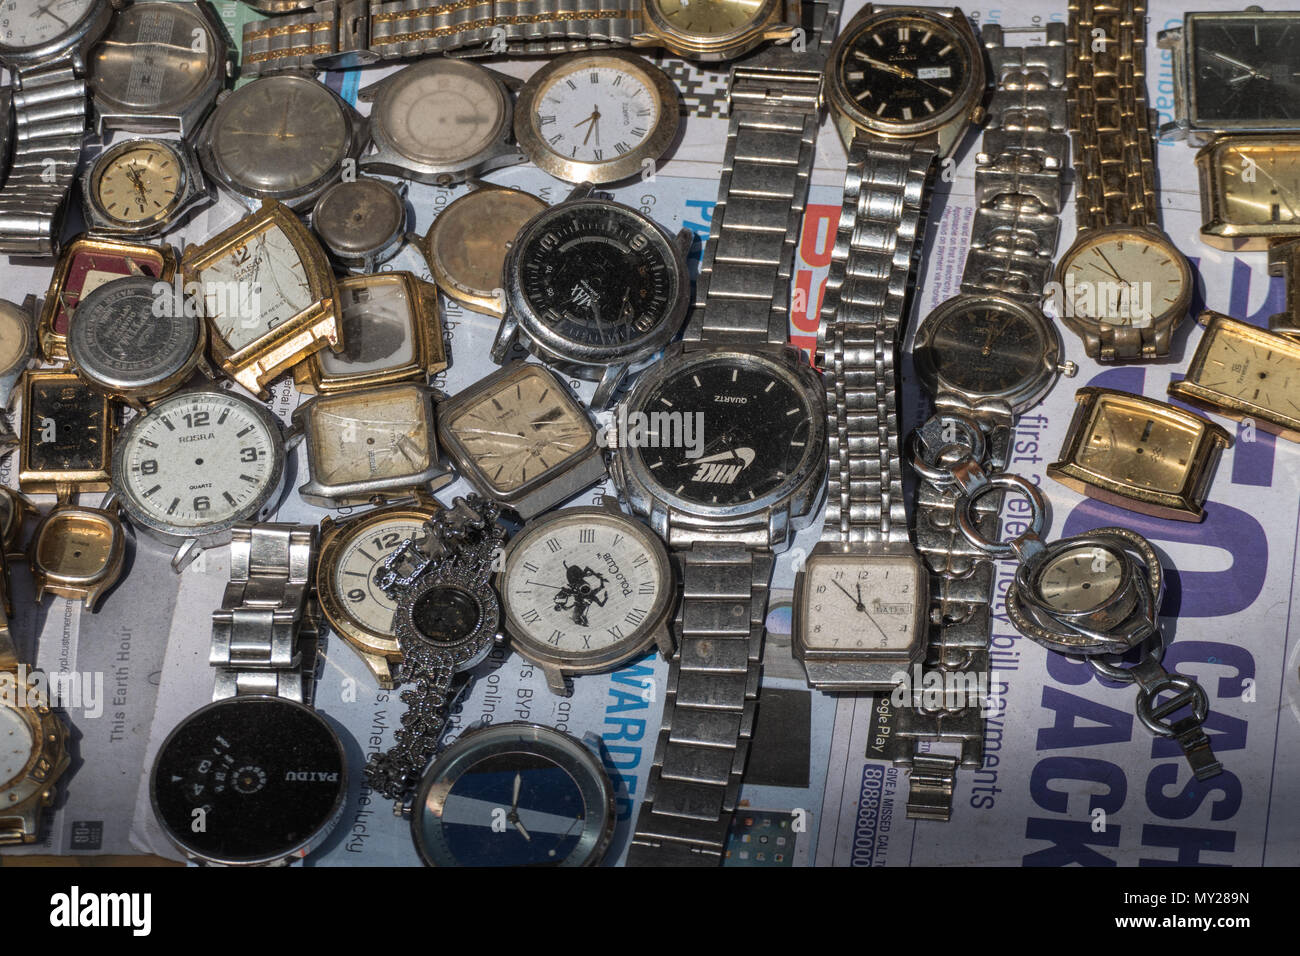 A selection of old watches - Stock Image